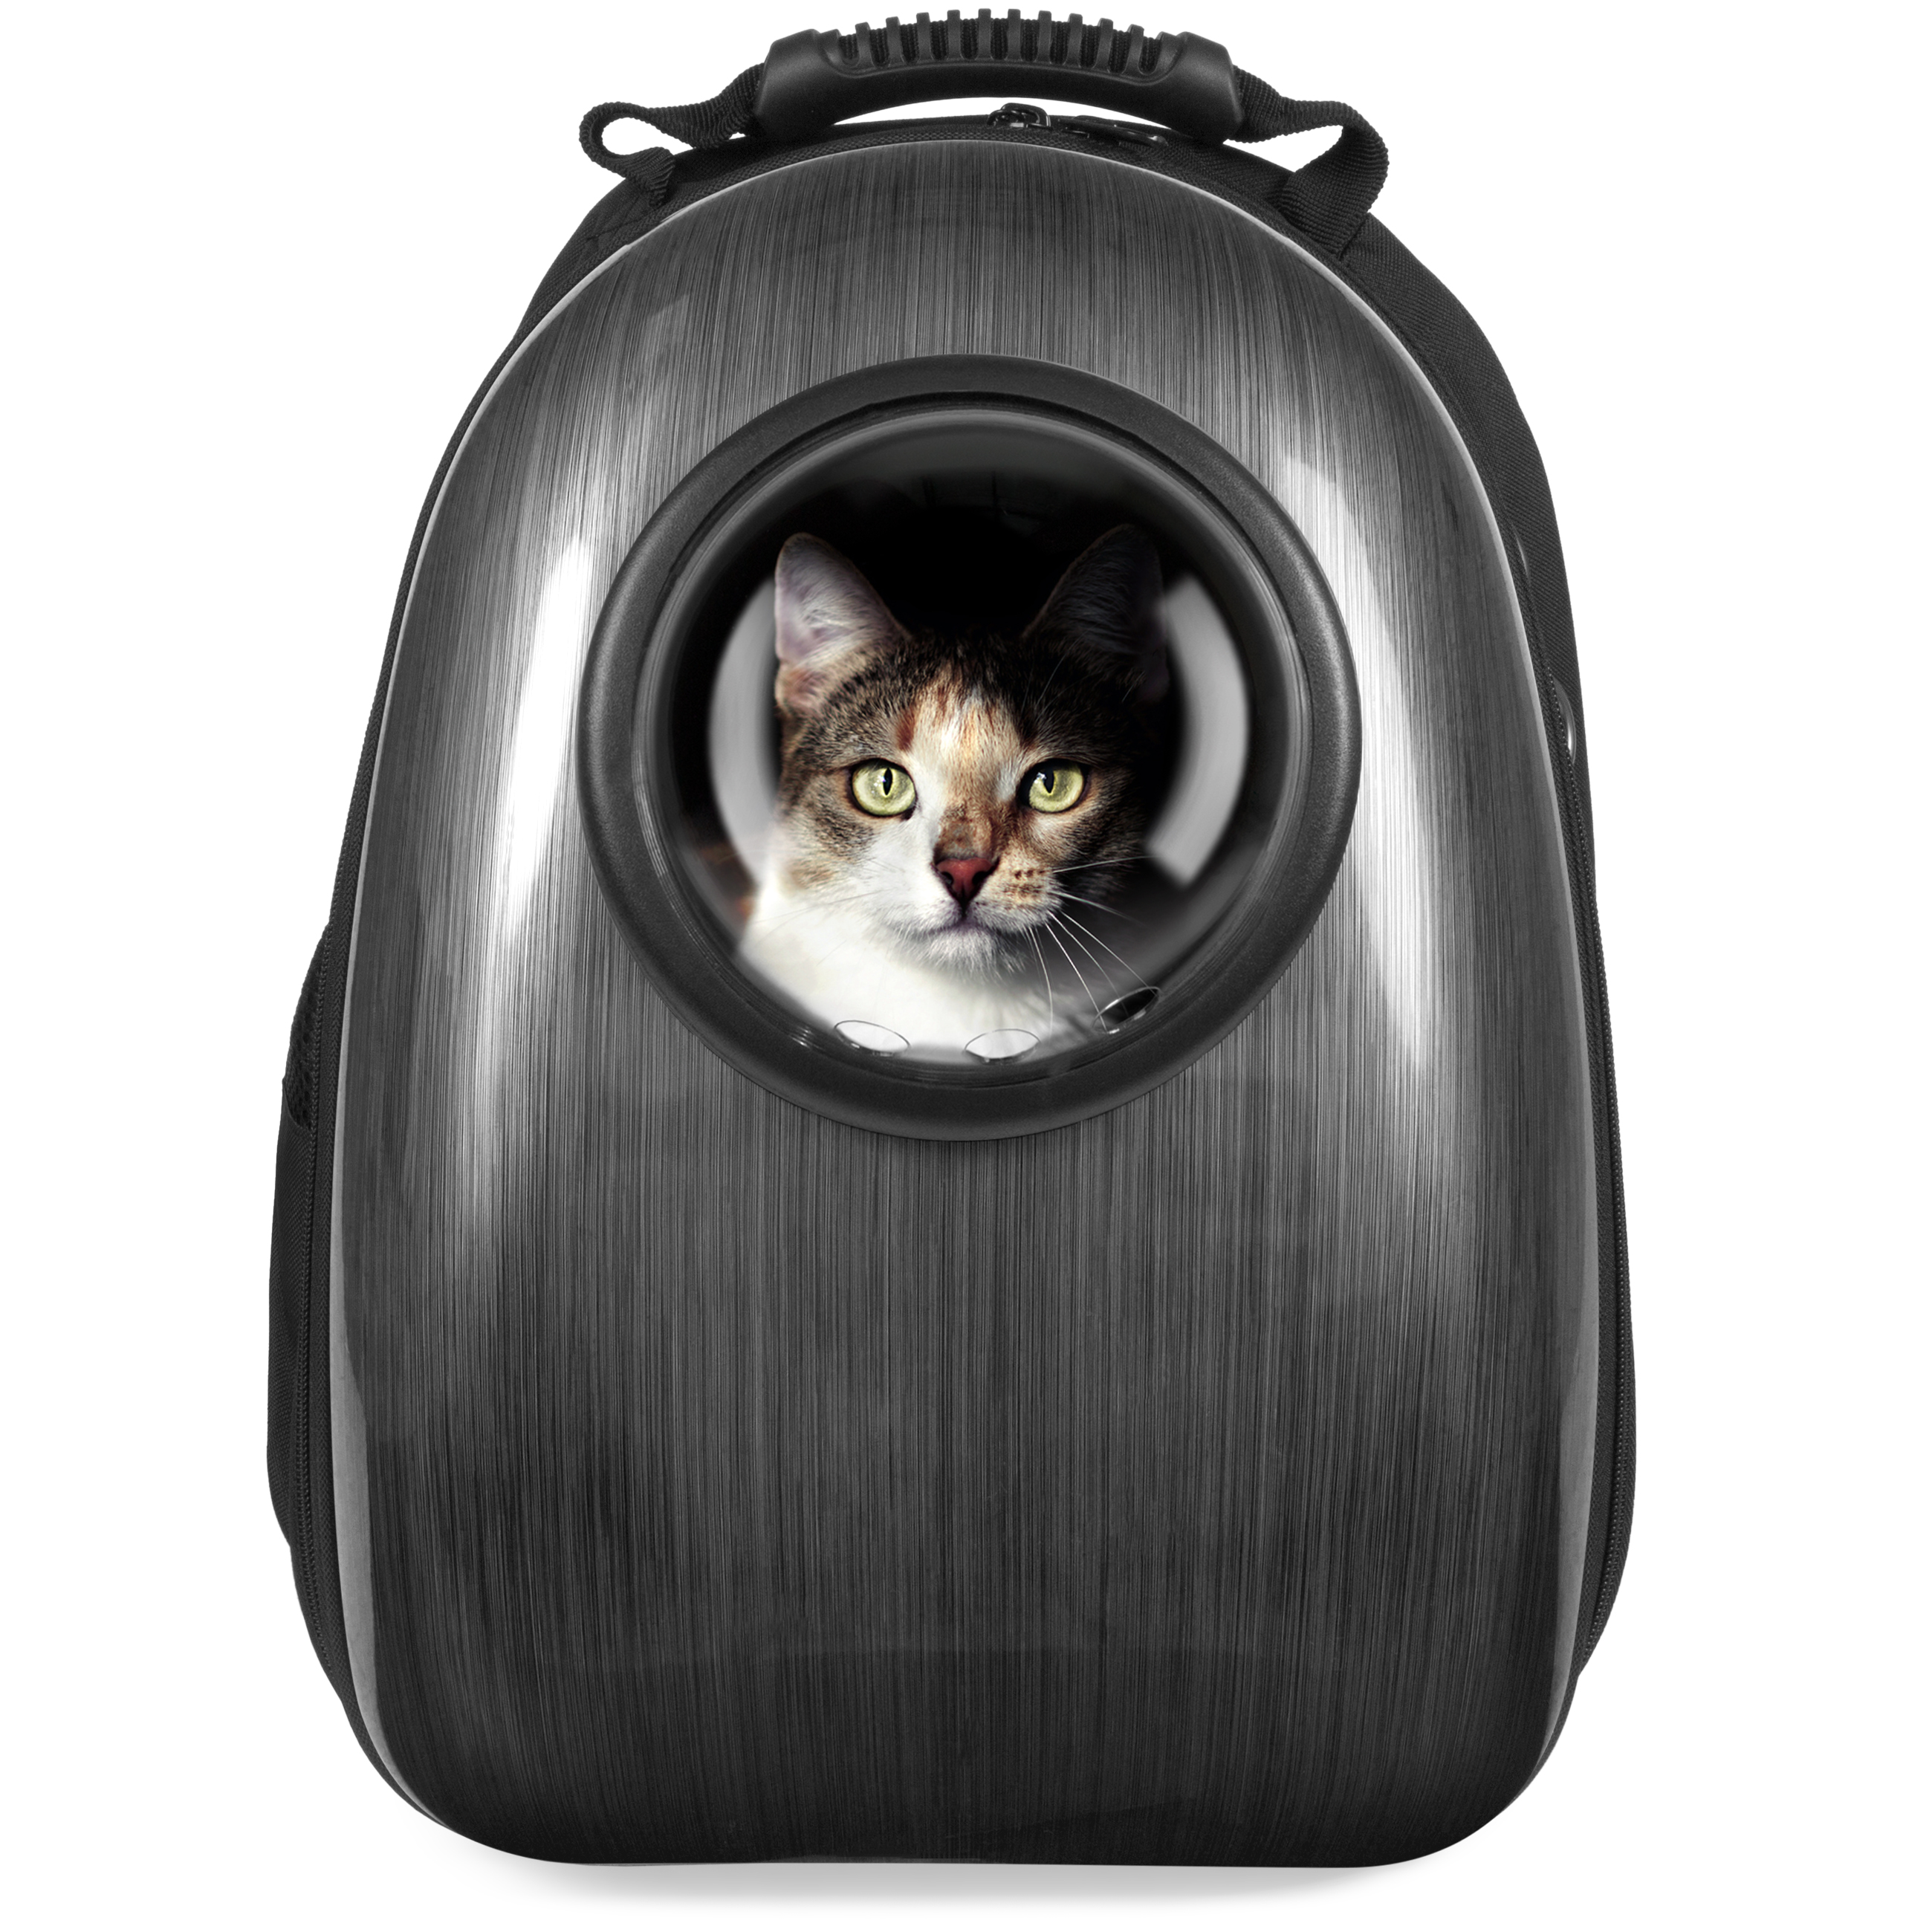 Best Choice Products Pet Carrier Space Capsule Backpack, Bubble Window Lightweight Padded Traveler for Cats, Dogs, Small Animals w/ Breathable Air Holes - Charcoal Gray